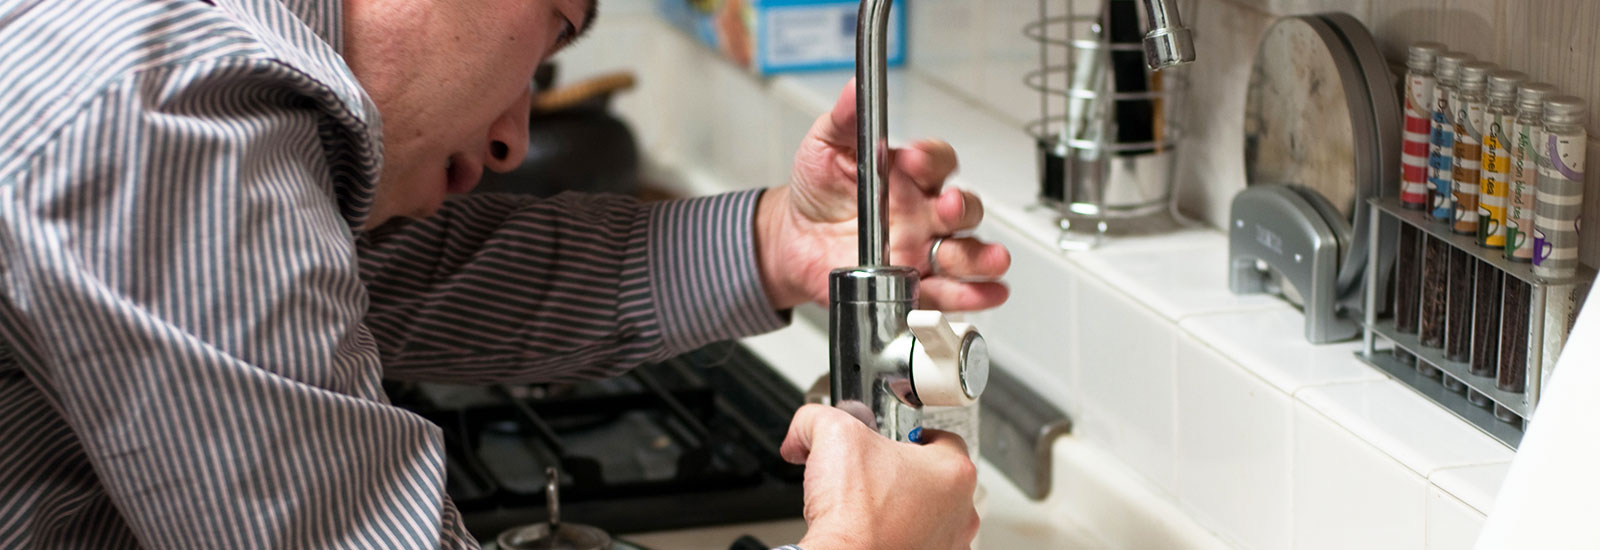 Kingstree Plumbing & Heating - Sherwood Park, St. Albert & Edmonton Plumber